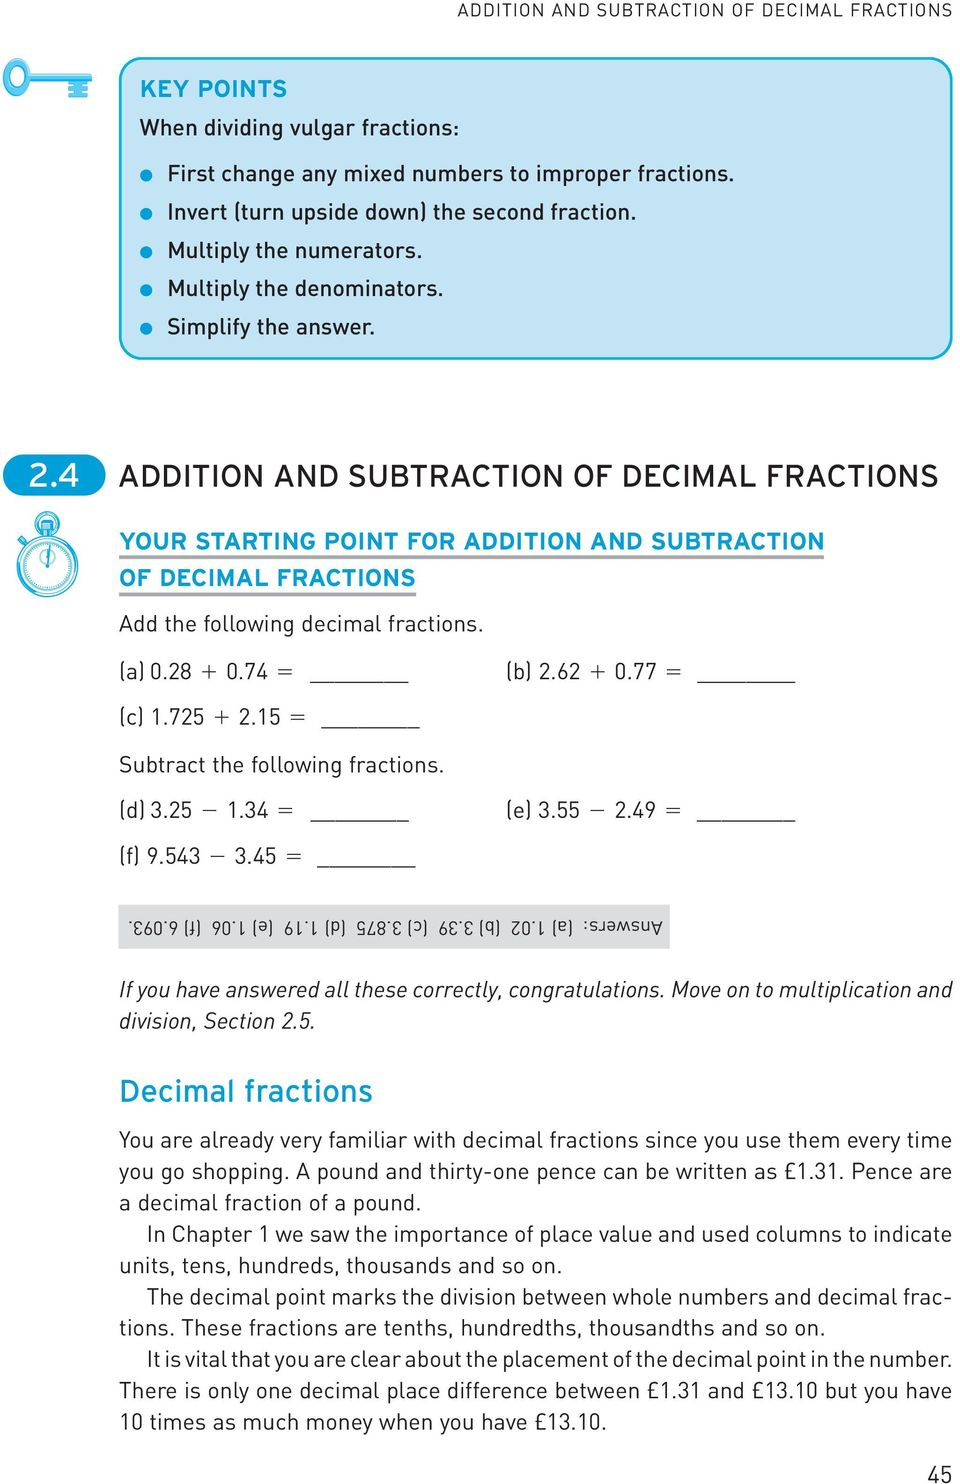 4 ADDITION AND SUBTRACTION OF DECIMAL FRACTIONS YOUR STARTING POINT FOR ADDITION AND SUBTRACTION OF DECIMAL FRACTIONS Add the following decimal fractions. (a) 0.28 + 0.74 = (b) 2.62 + 0.77 = (c).